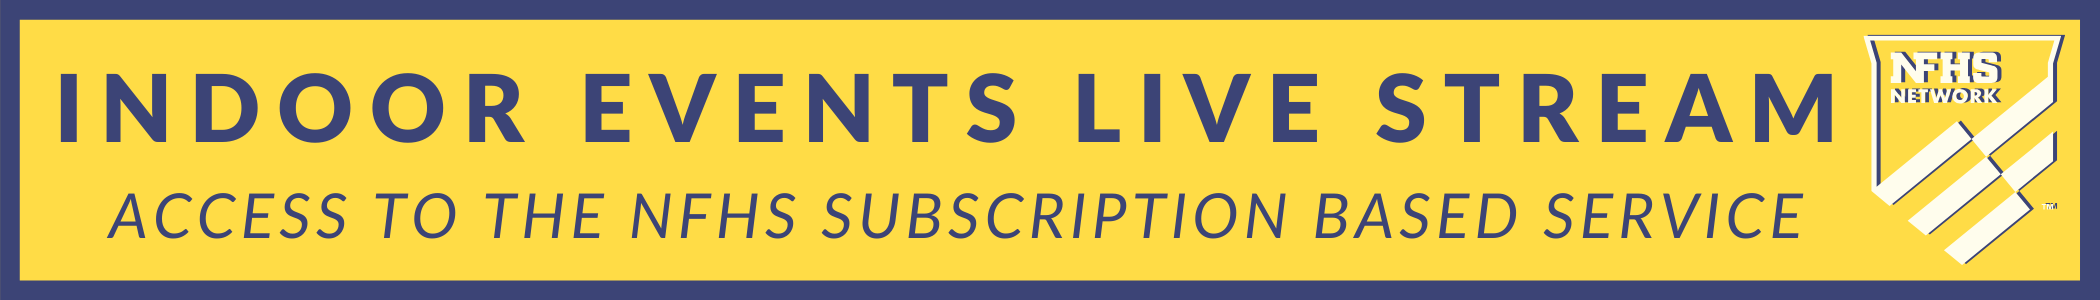 Indoor Events LIVE Stream NFHS Subscription Based Service